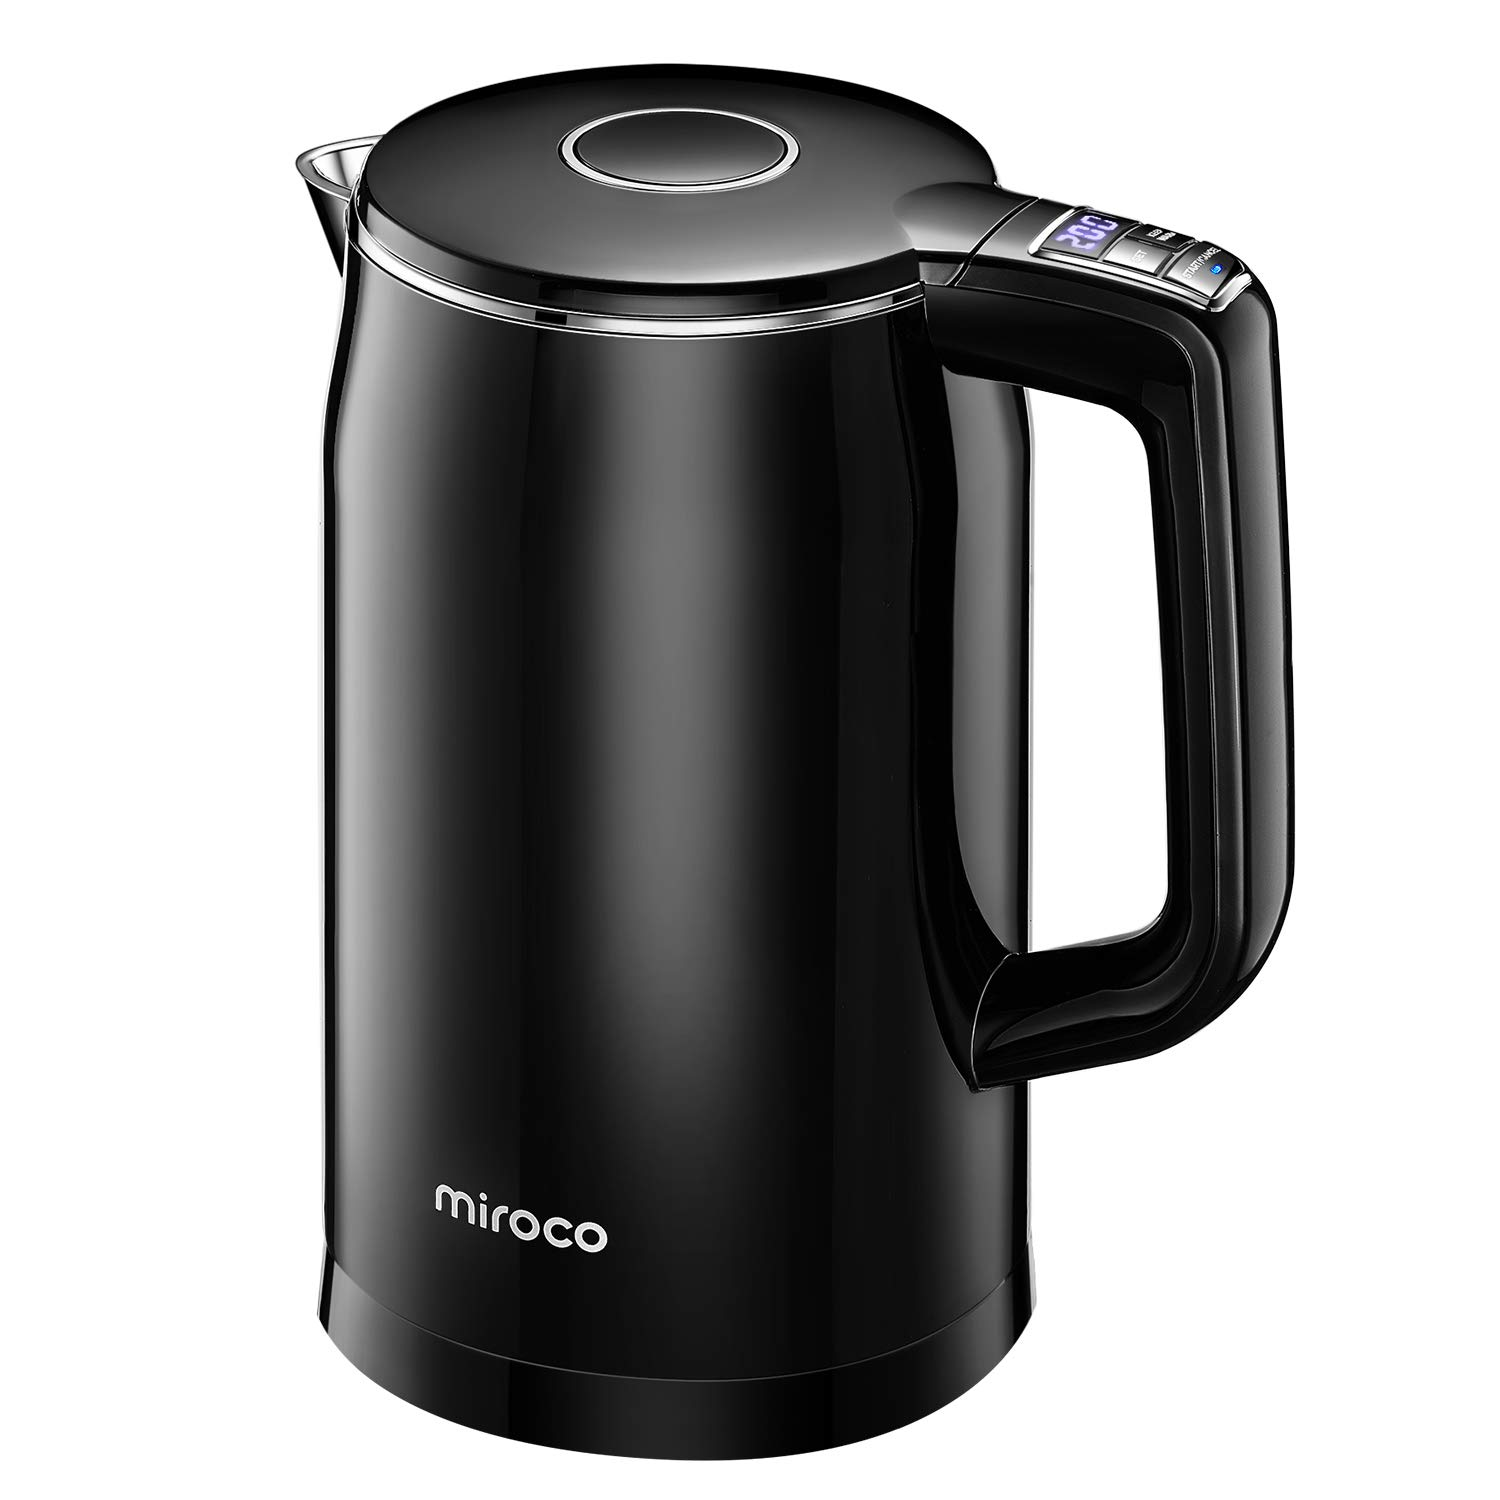 Miroco Electric Kettle Temperature Control 1.7L Double Wall Keep Warm, Anti-scald Tea Kettle 100 Stainless Steel BPA-Free Hot Water Boiler, Auto Shut-Off, Boil-Dry Protection, 1500W Fast Boiling-120V